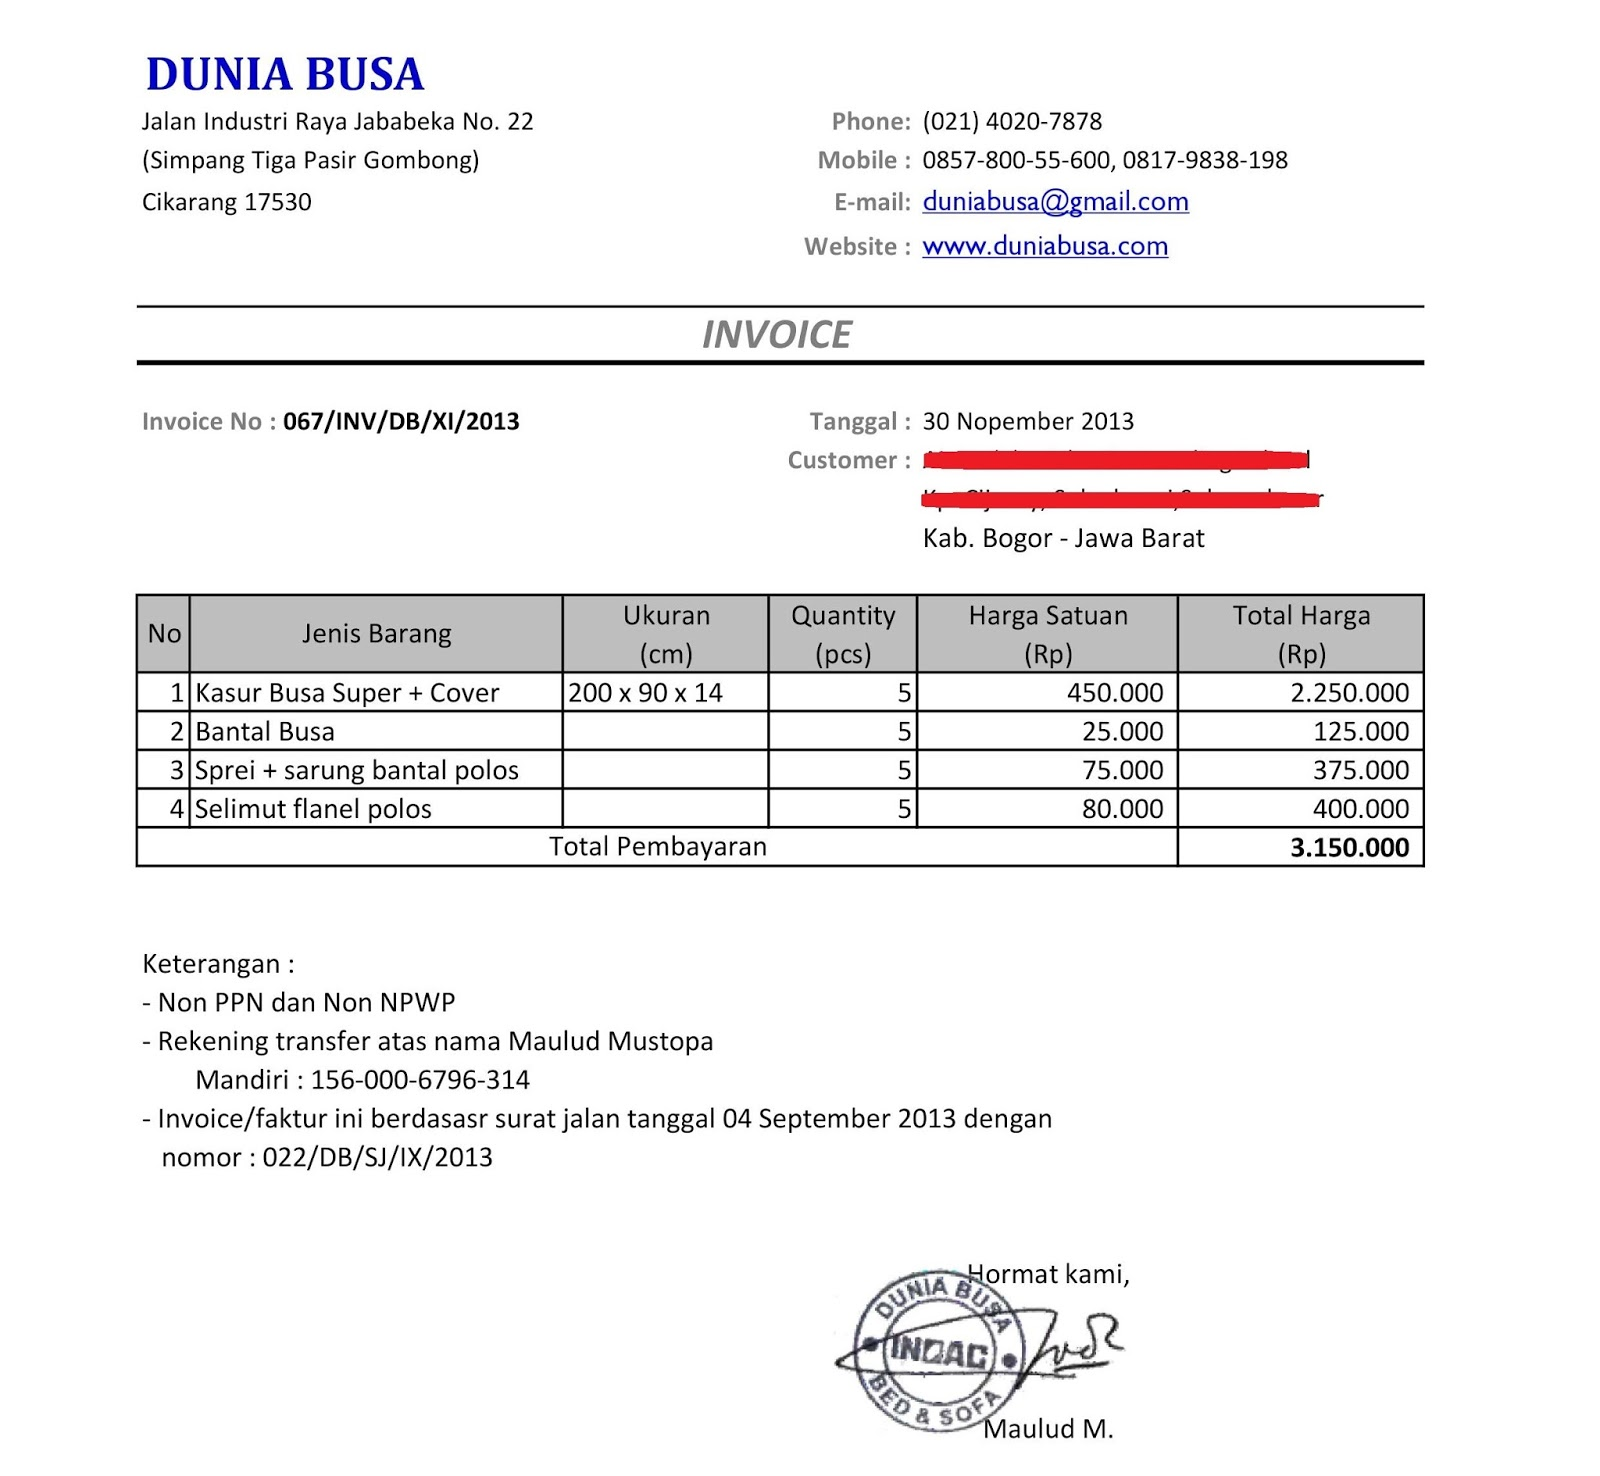 Centralasianshepherdus  Remarkable Free Invoice Online  Create Invoice Online  Invoice Template  With Luxury Contoh Format Invoice Atau Surat Tagihan  Brankas Arsip  Free Invoice Online With Delightful Google Invoice Maker Also Free Invoice Creator In Addition Google Invoice Template And Msrp Vs Invoice As Well As Free Invoicing Software Additionally Past Due Invoice Email From Sklepco With Centralasianshepherdus  Luxury Free Invoice Online  Create Invoice Online  Invoice Template  With Delightful Contoh Format Invoice Atau Surat Tagihan  Brankas Arsip  Free Invoice Online And Remarkable Google Invoice Maker Also Free Invoice Creator In Addition Google Invoice Template From Sklepco